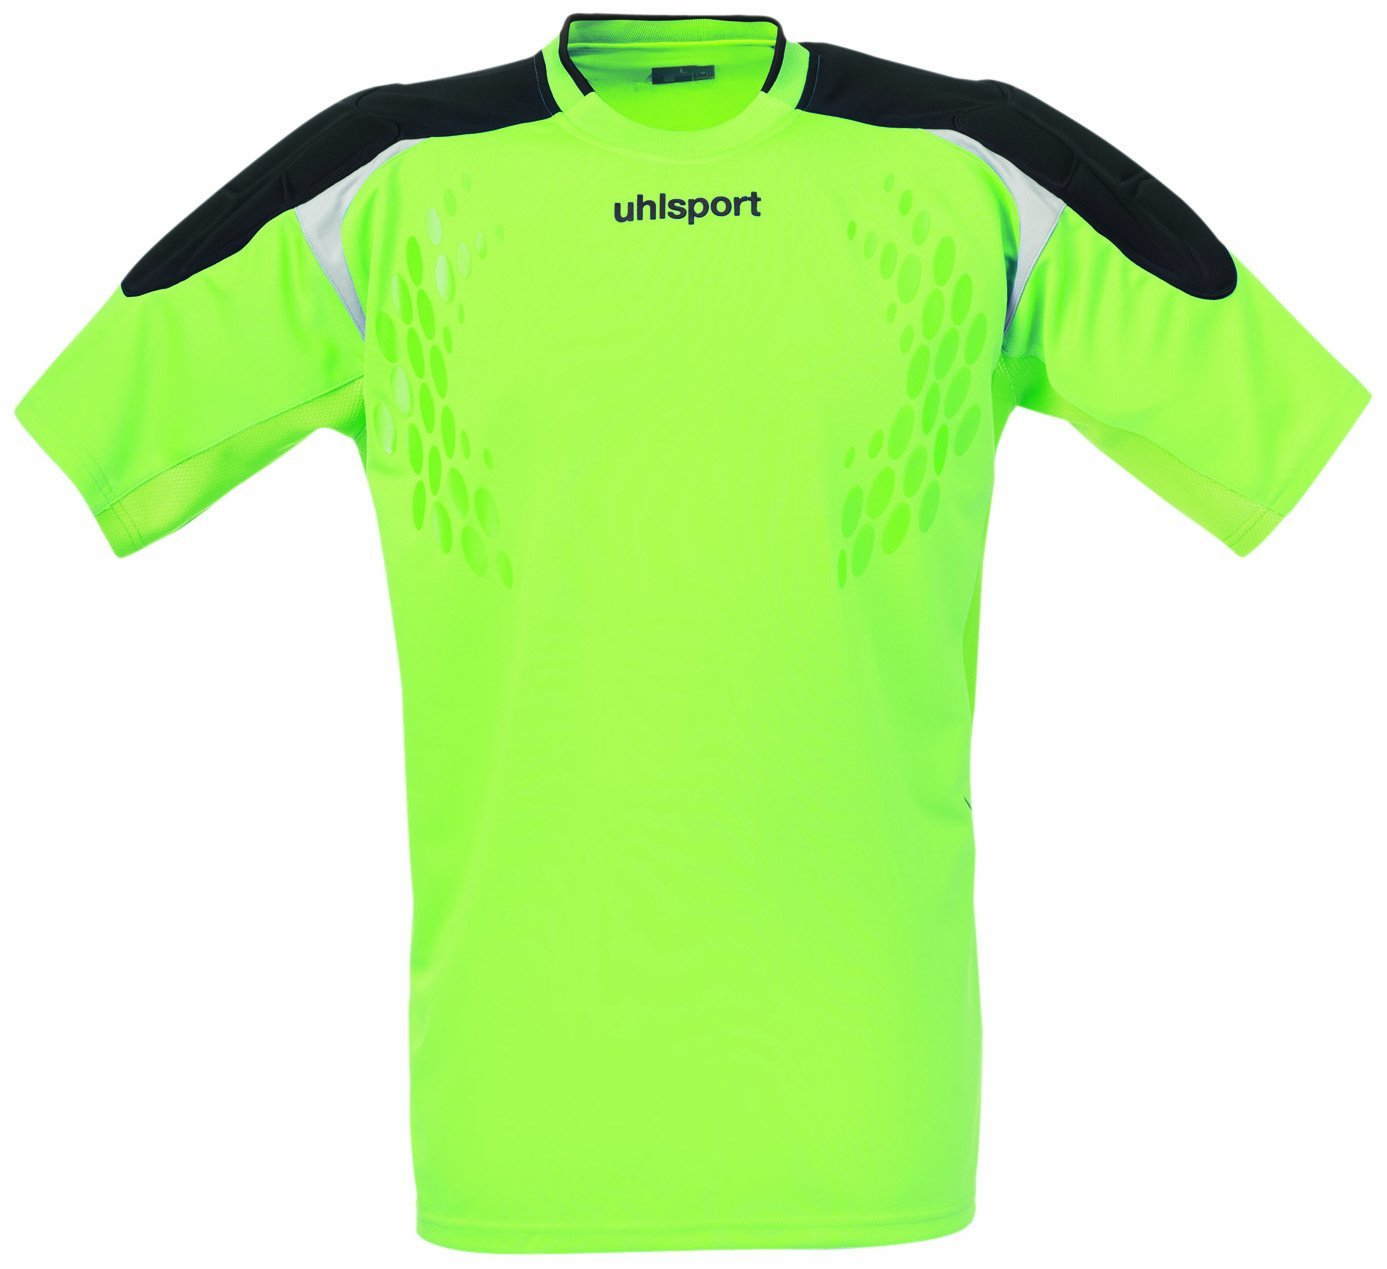 982dfe733 Get Quotations · Uhlsport Torwart Tech Short Sleeve Goalkeeper Jersey